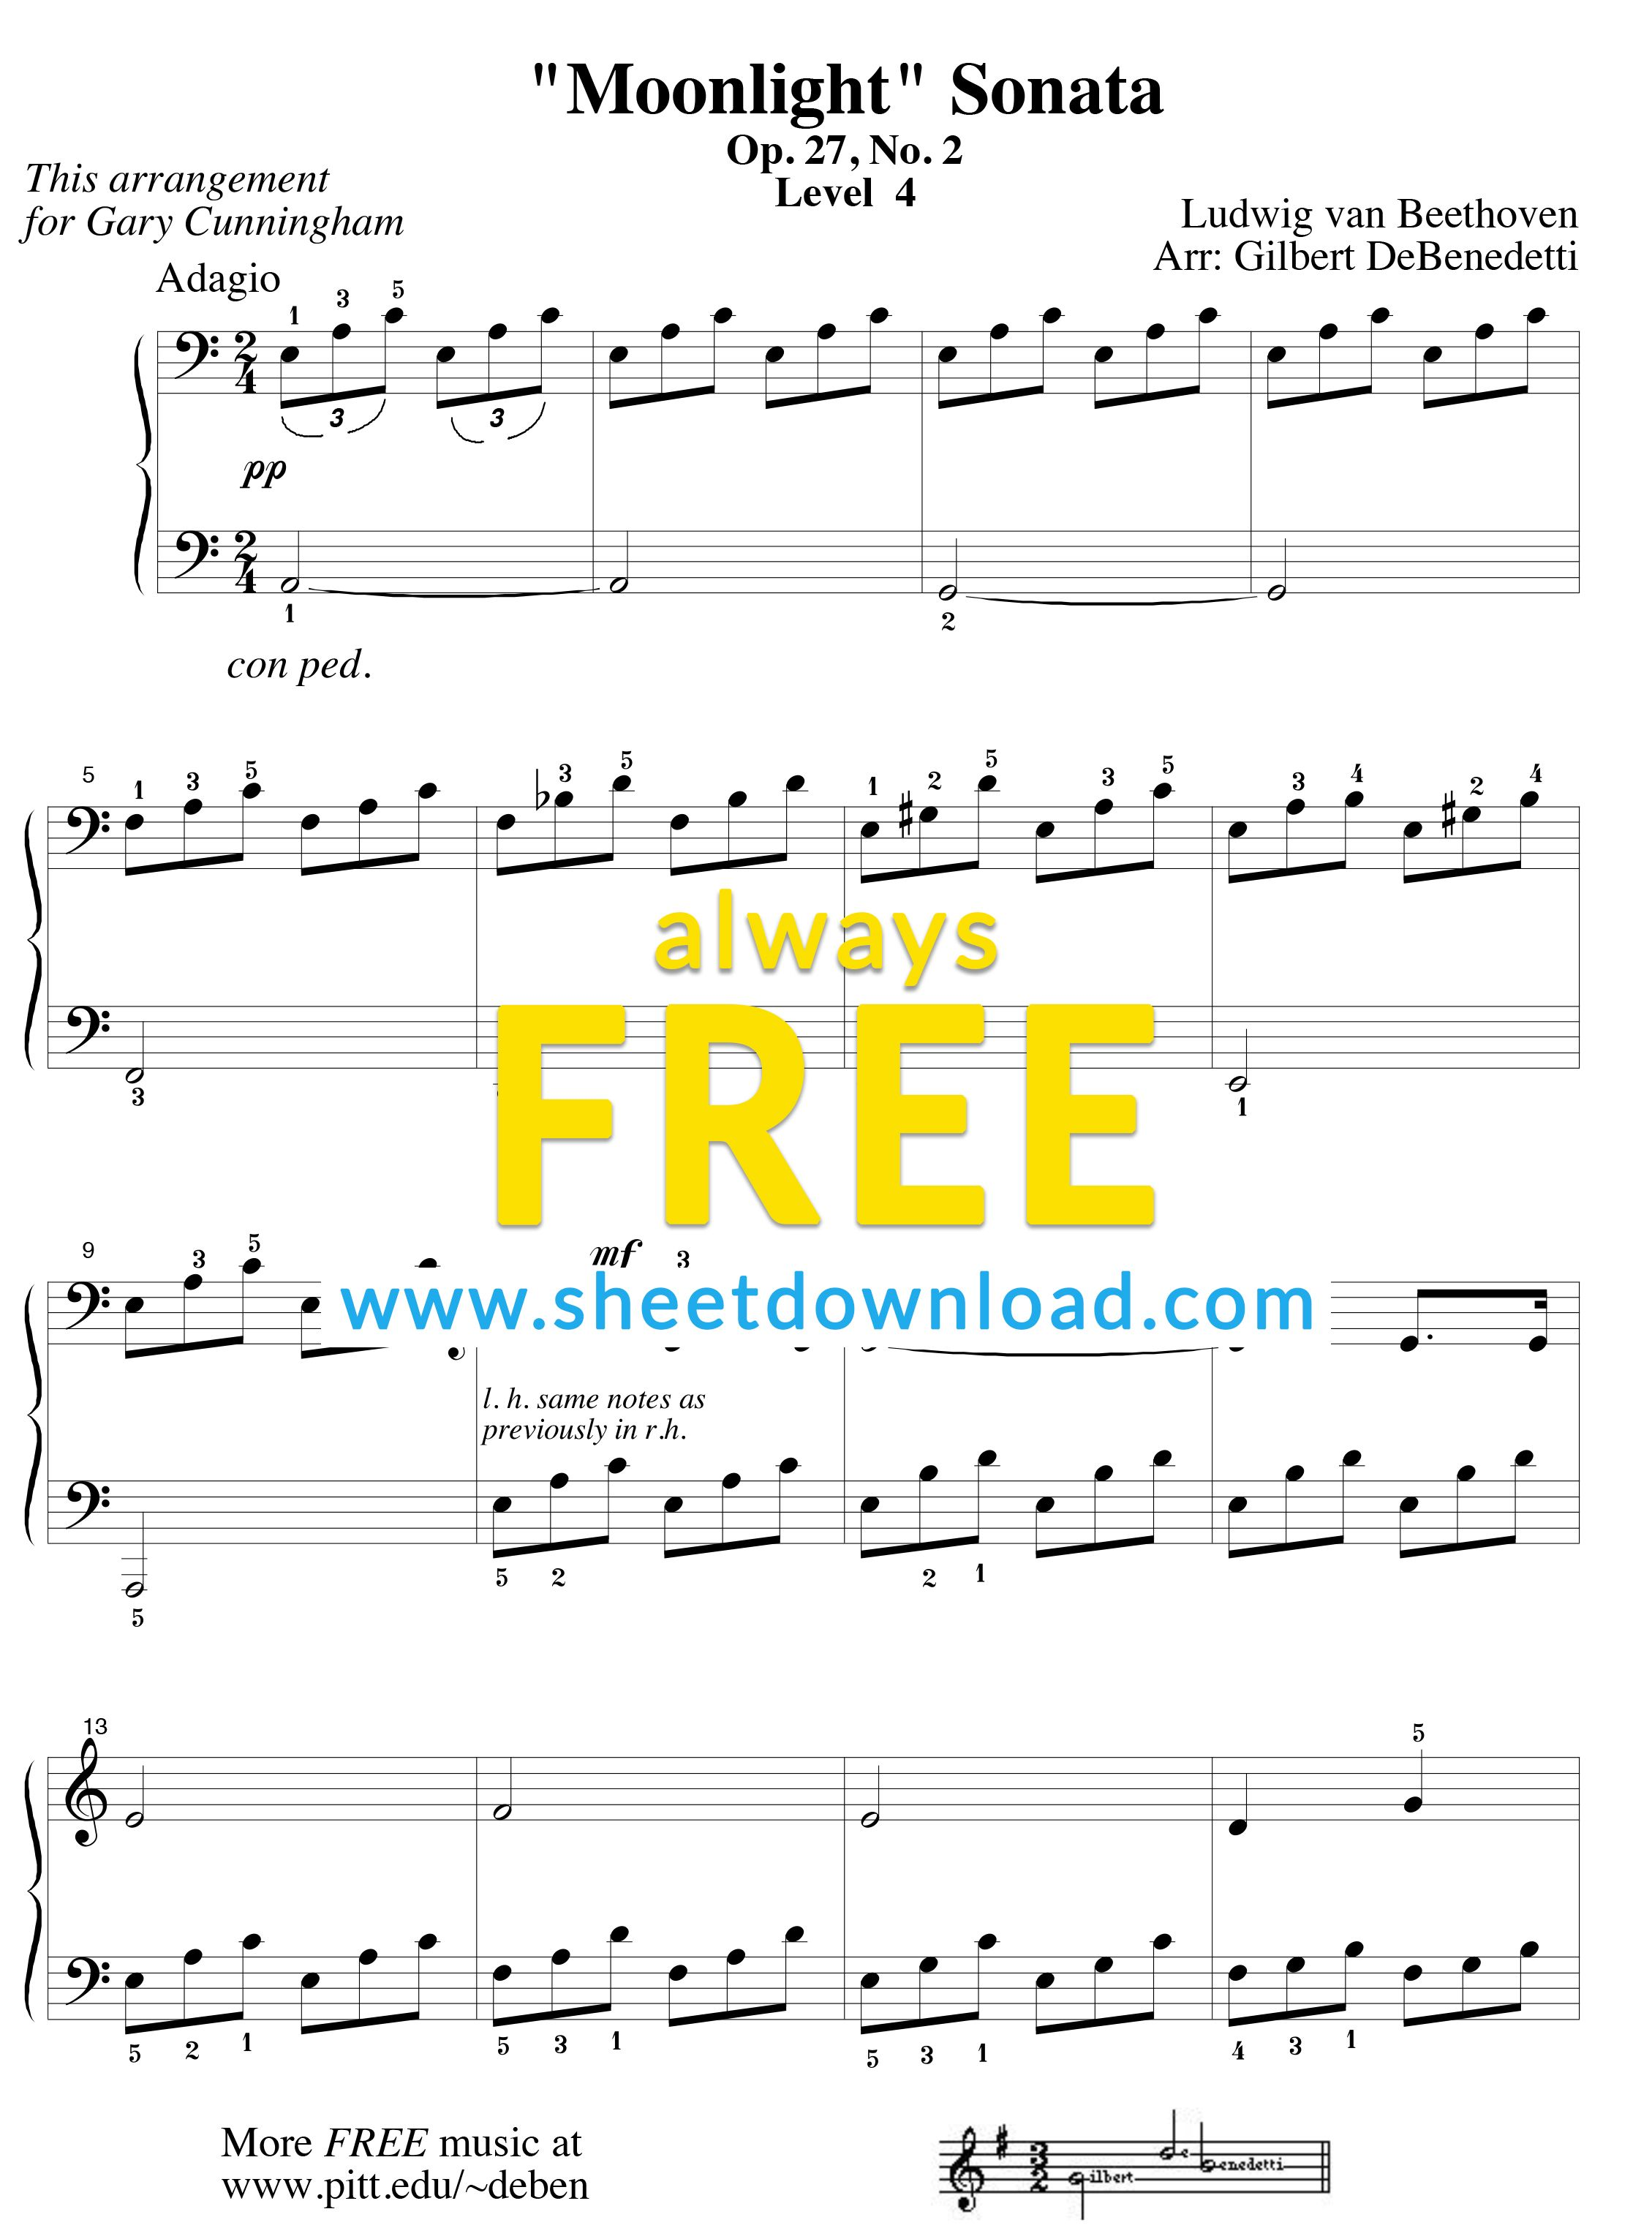 Download And Print Free Piano Sheet Music Pdfs From Sheetdownload